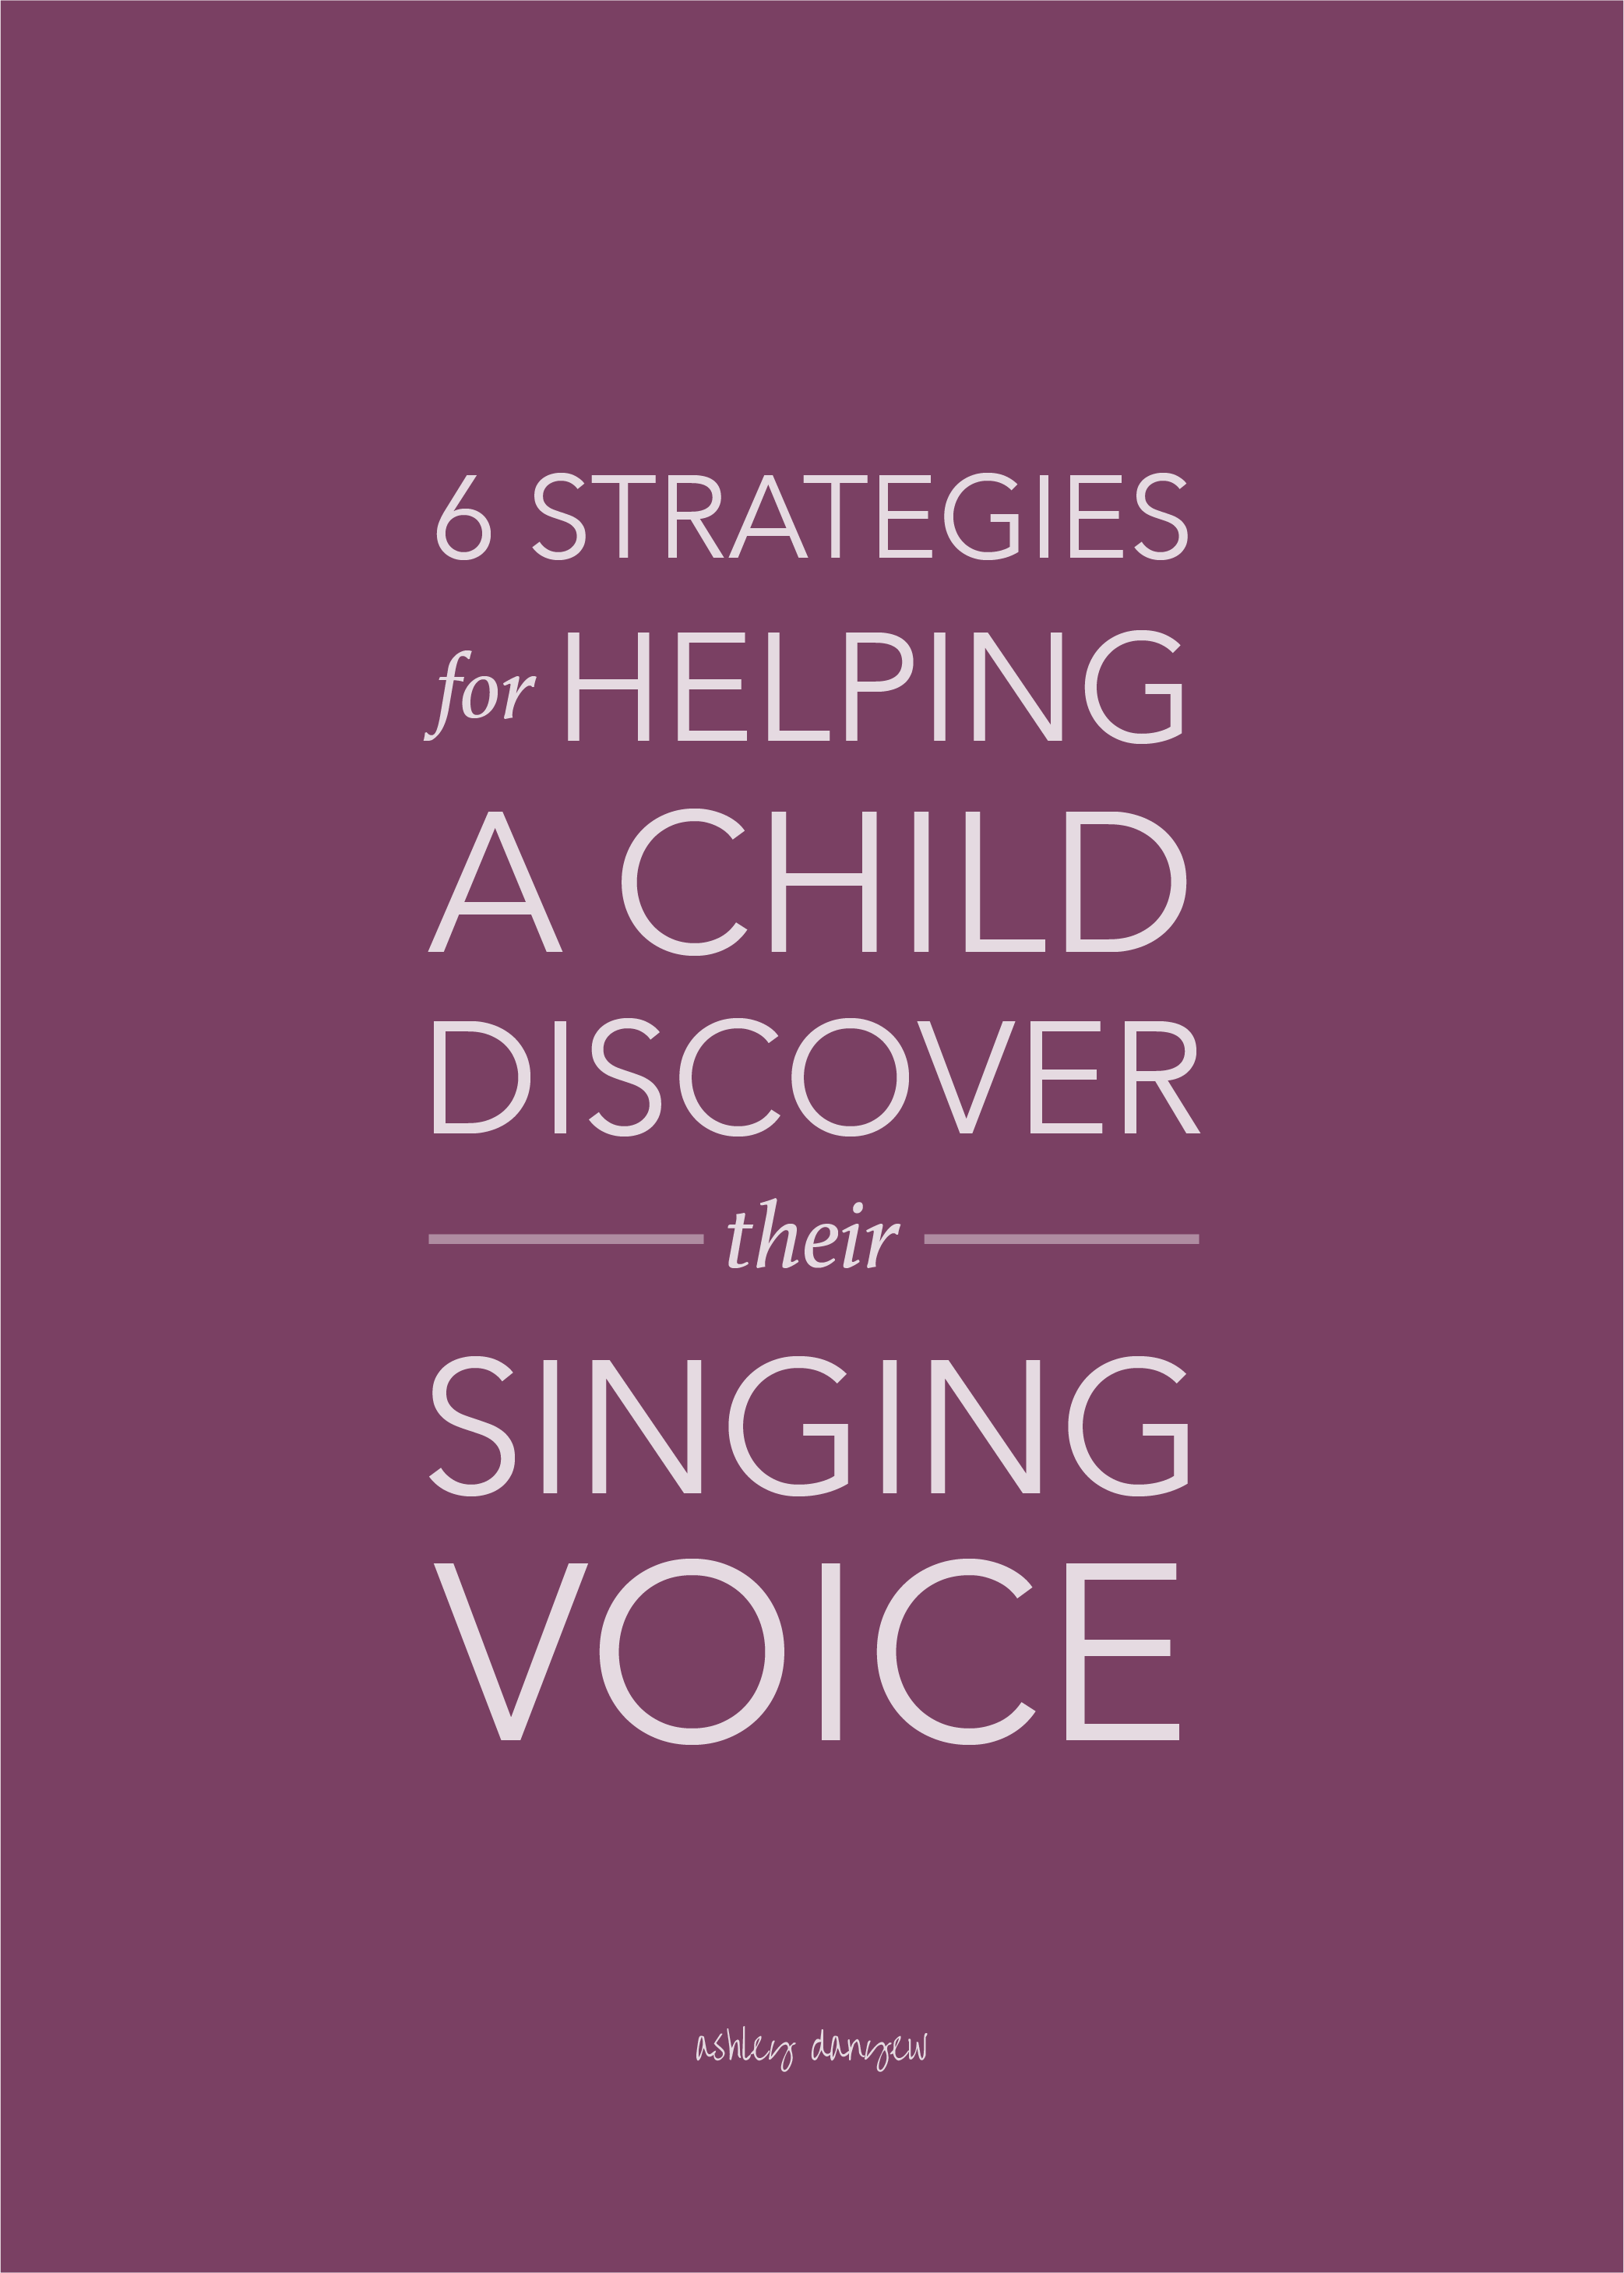 6 Strategies for Helping a Child Discover Their Singing Voice.png